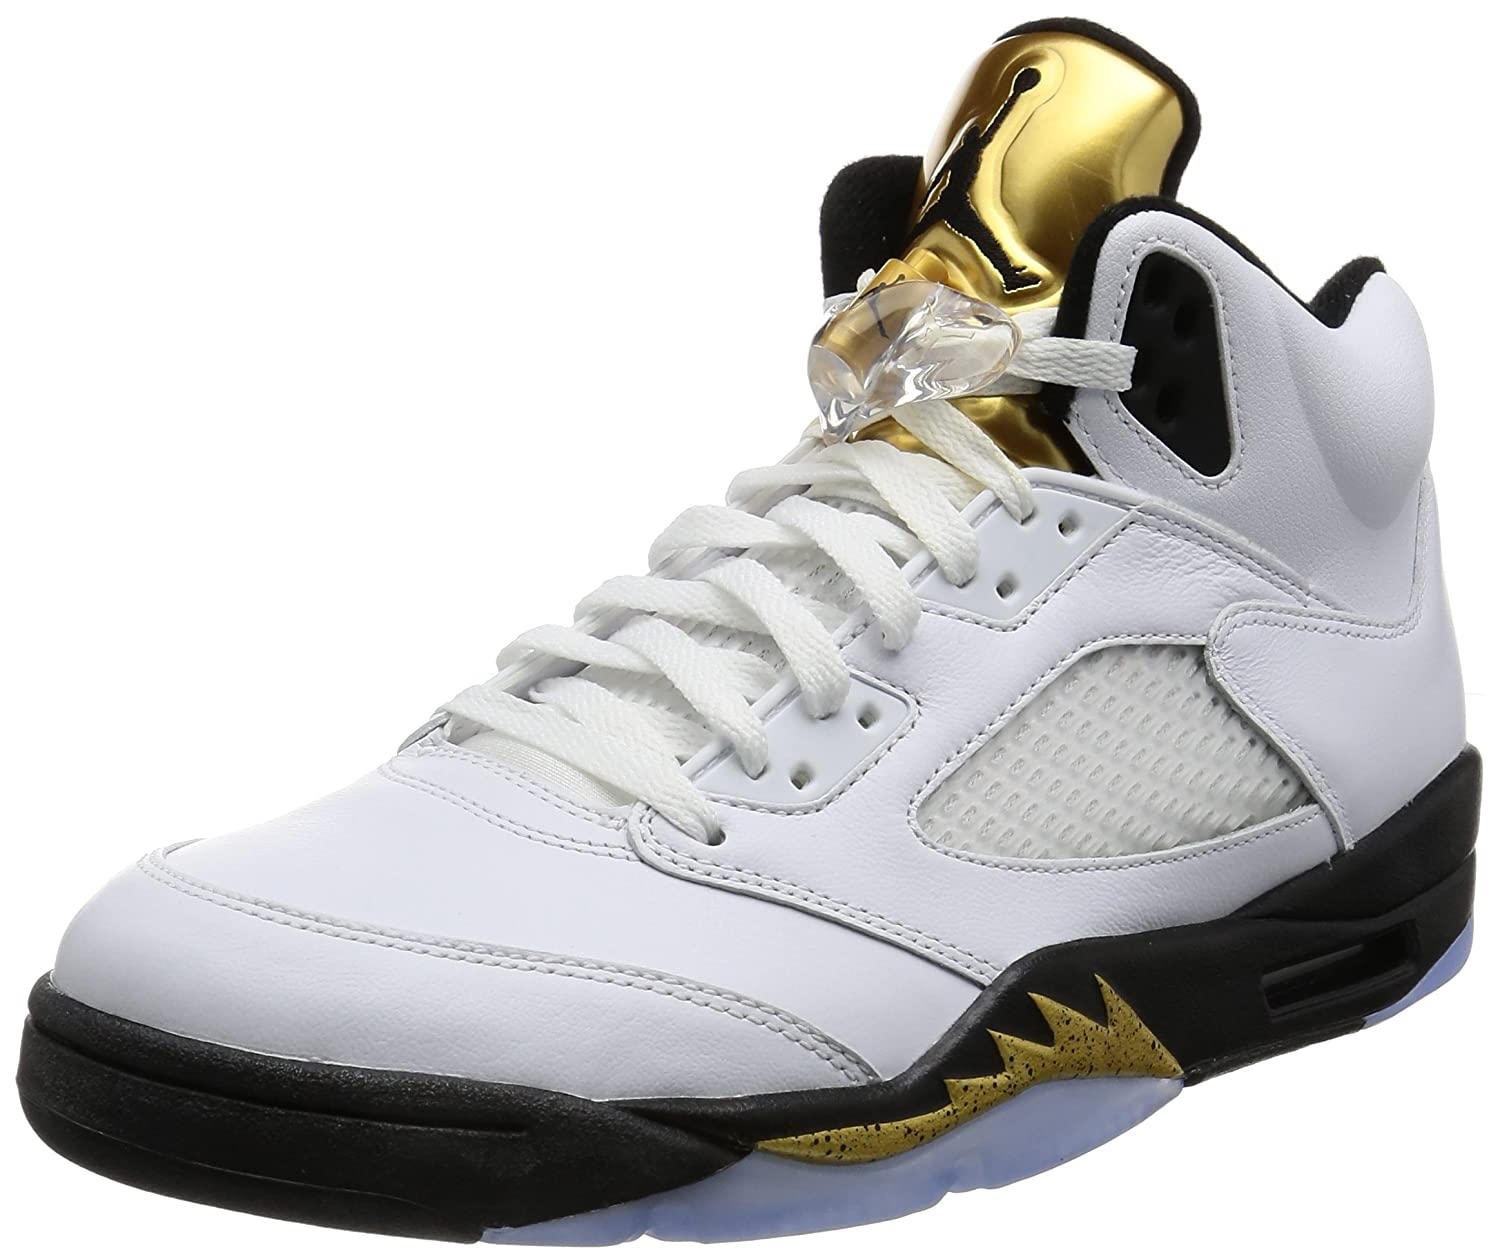 meet 17031 6d869 Nike Mens Air Jordan 5 Retro Olympic White/Black-Metallic Gold Leather Size  10.5